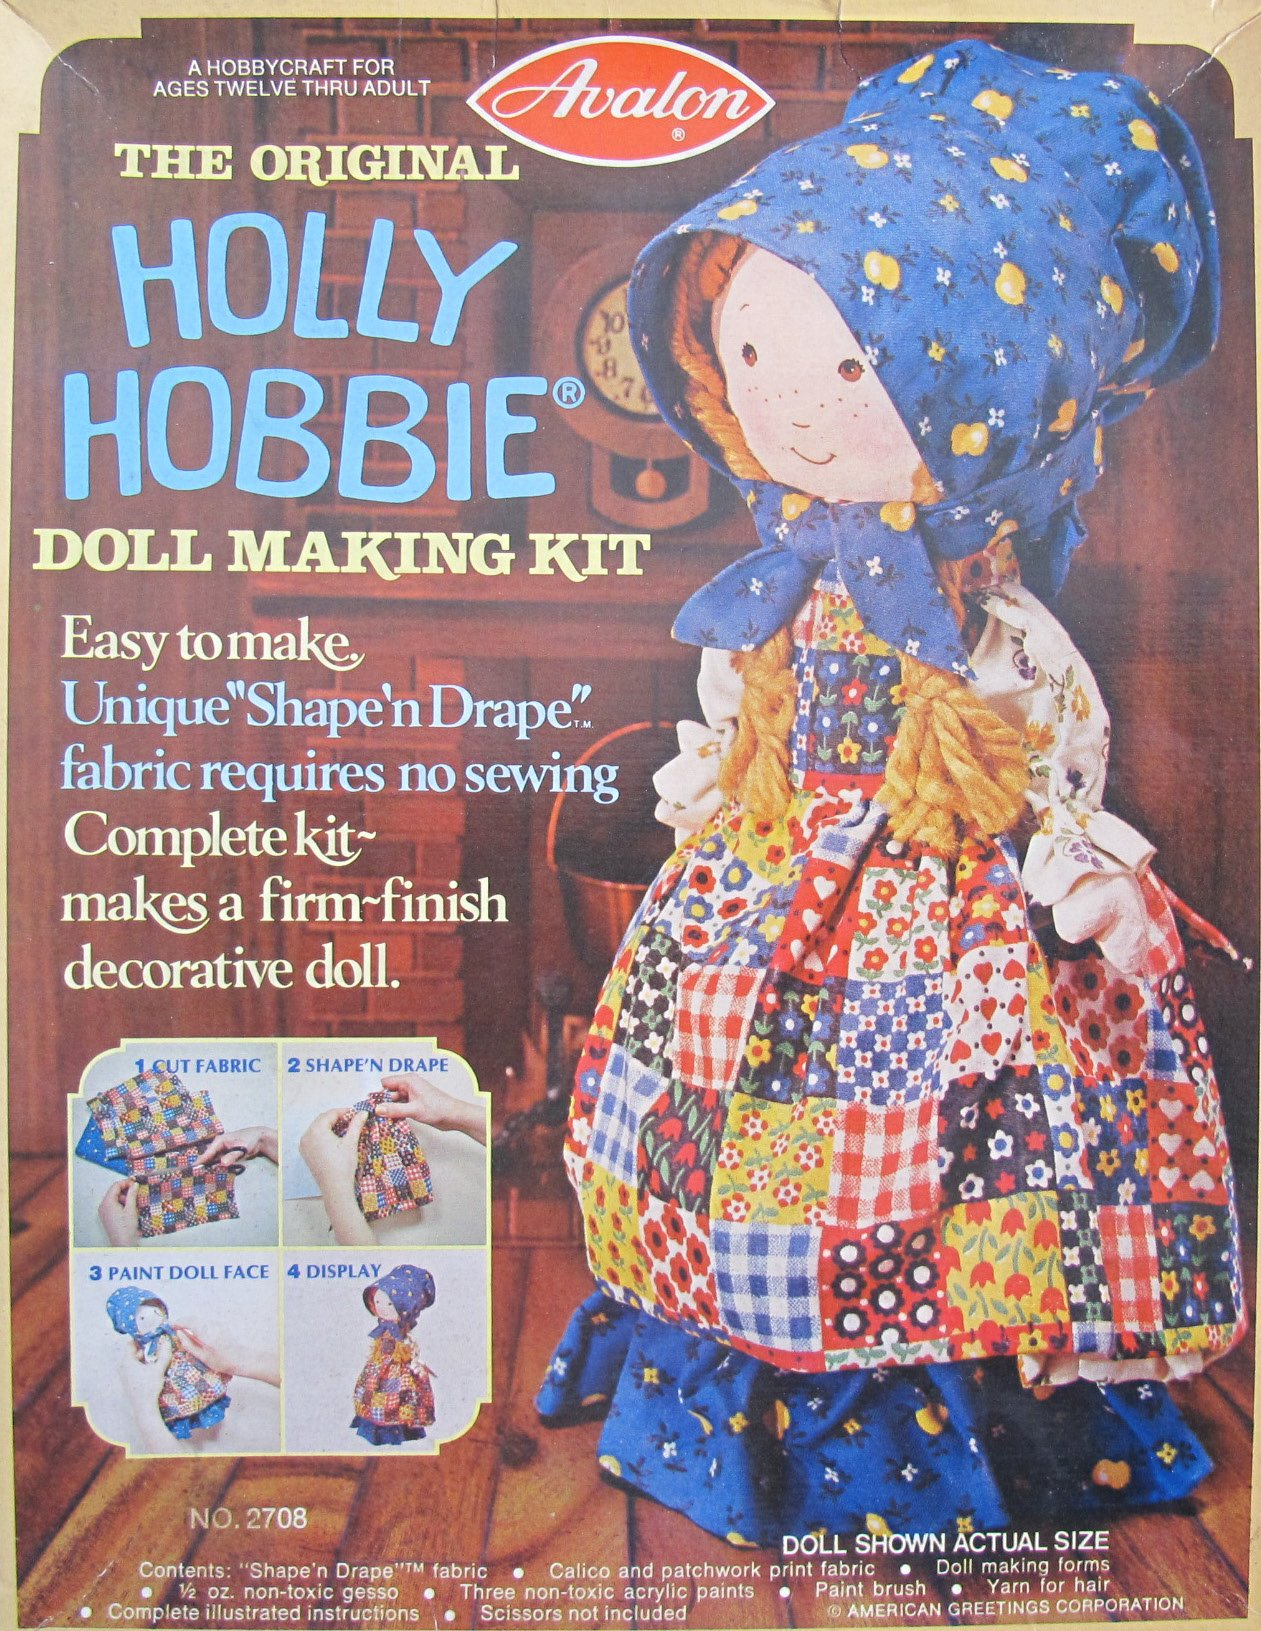 Avalon Original HOLLY HOBBIE DOLL MAKING Complete KIT Makes 9-1/2'' DECORATIVE DOLL Requires NO Sewing (1976) by The Original Holly Hobbie Doll Making Kit (Image #1)